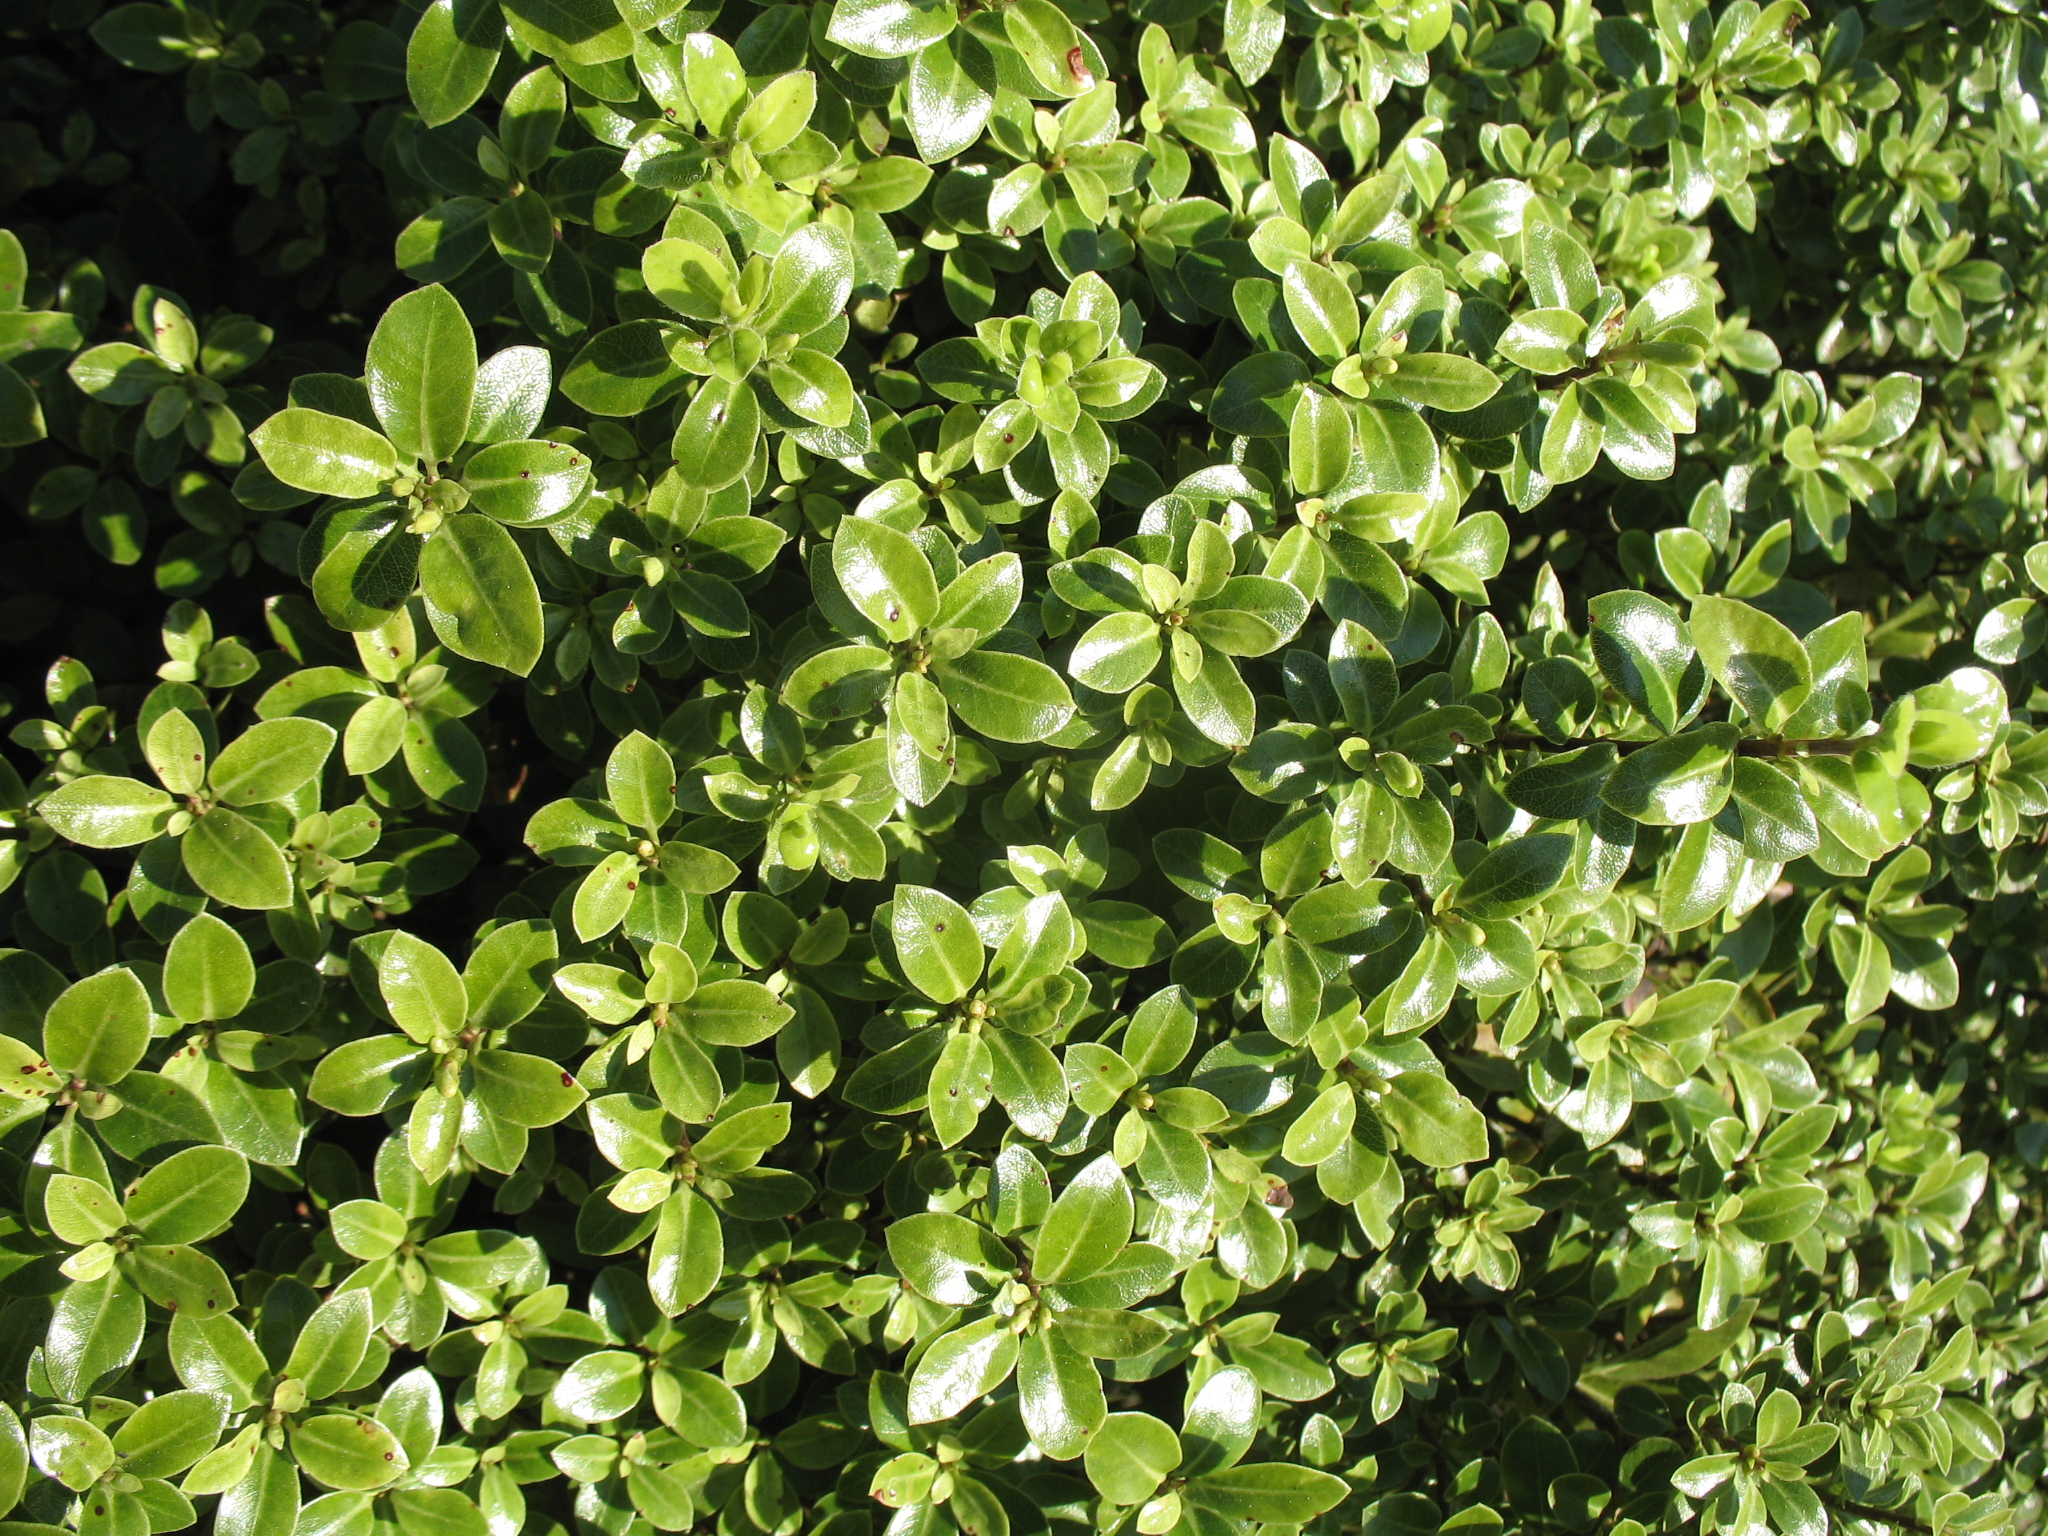 Pittosporum tenuifolium 'Golf Ball'  / Pittosporum tenuifolium 'Golf Ball'